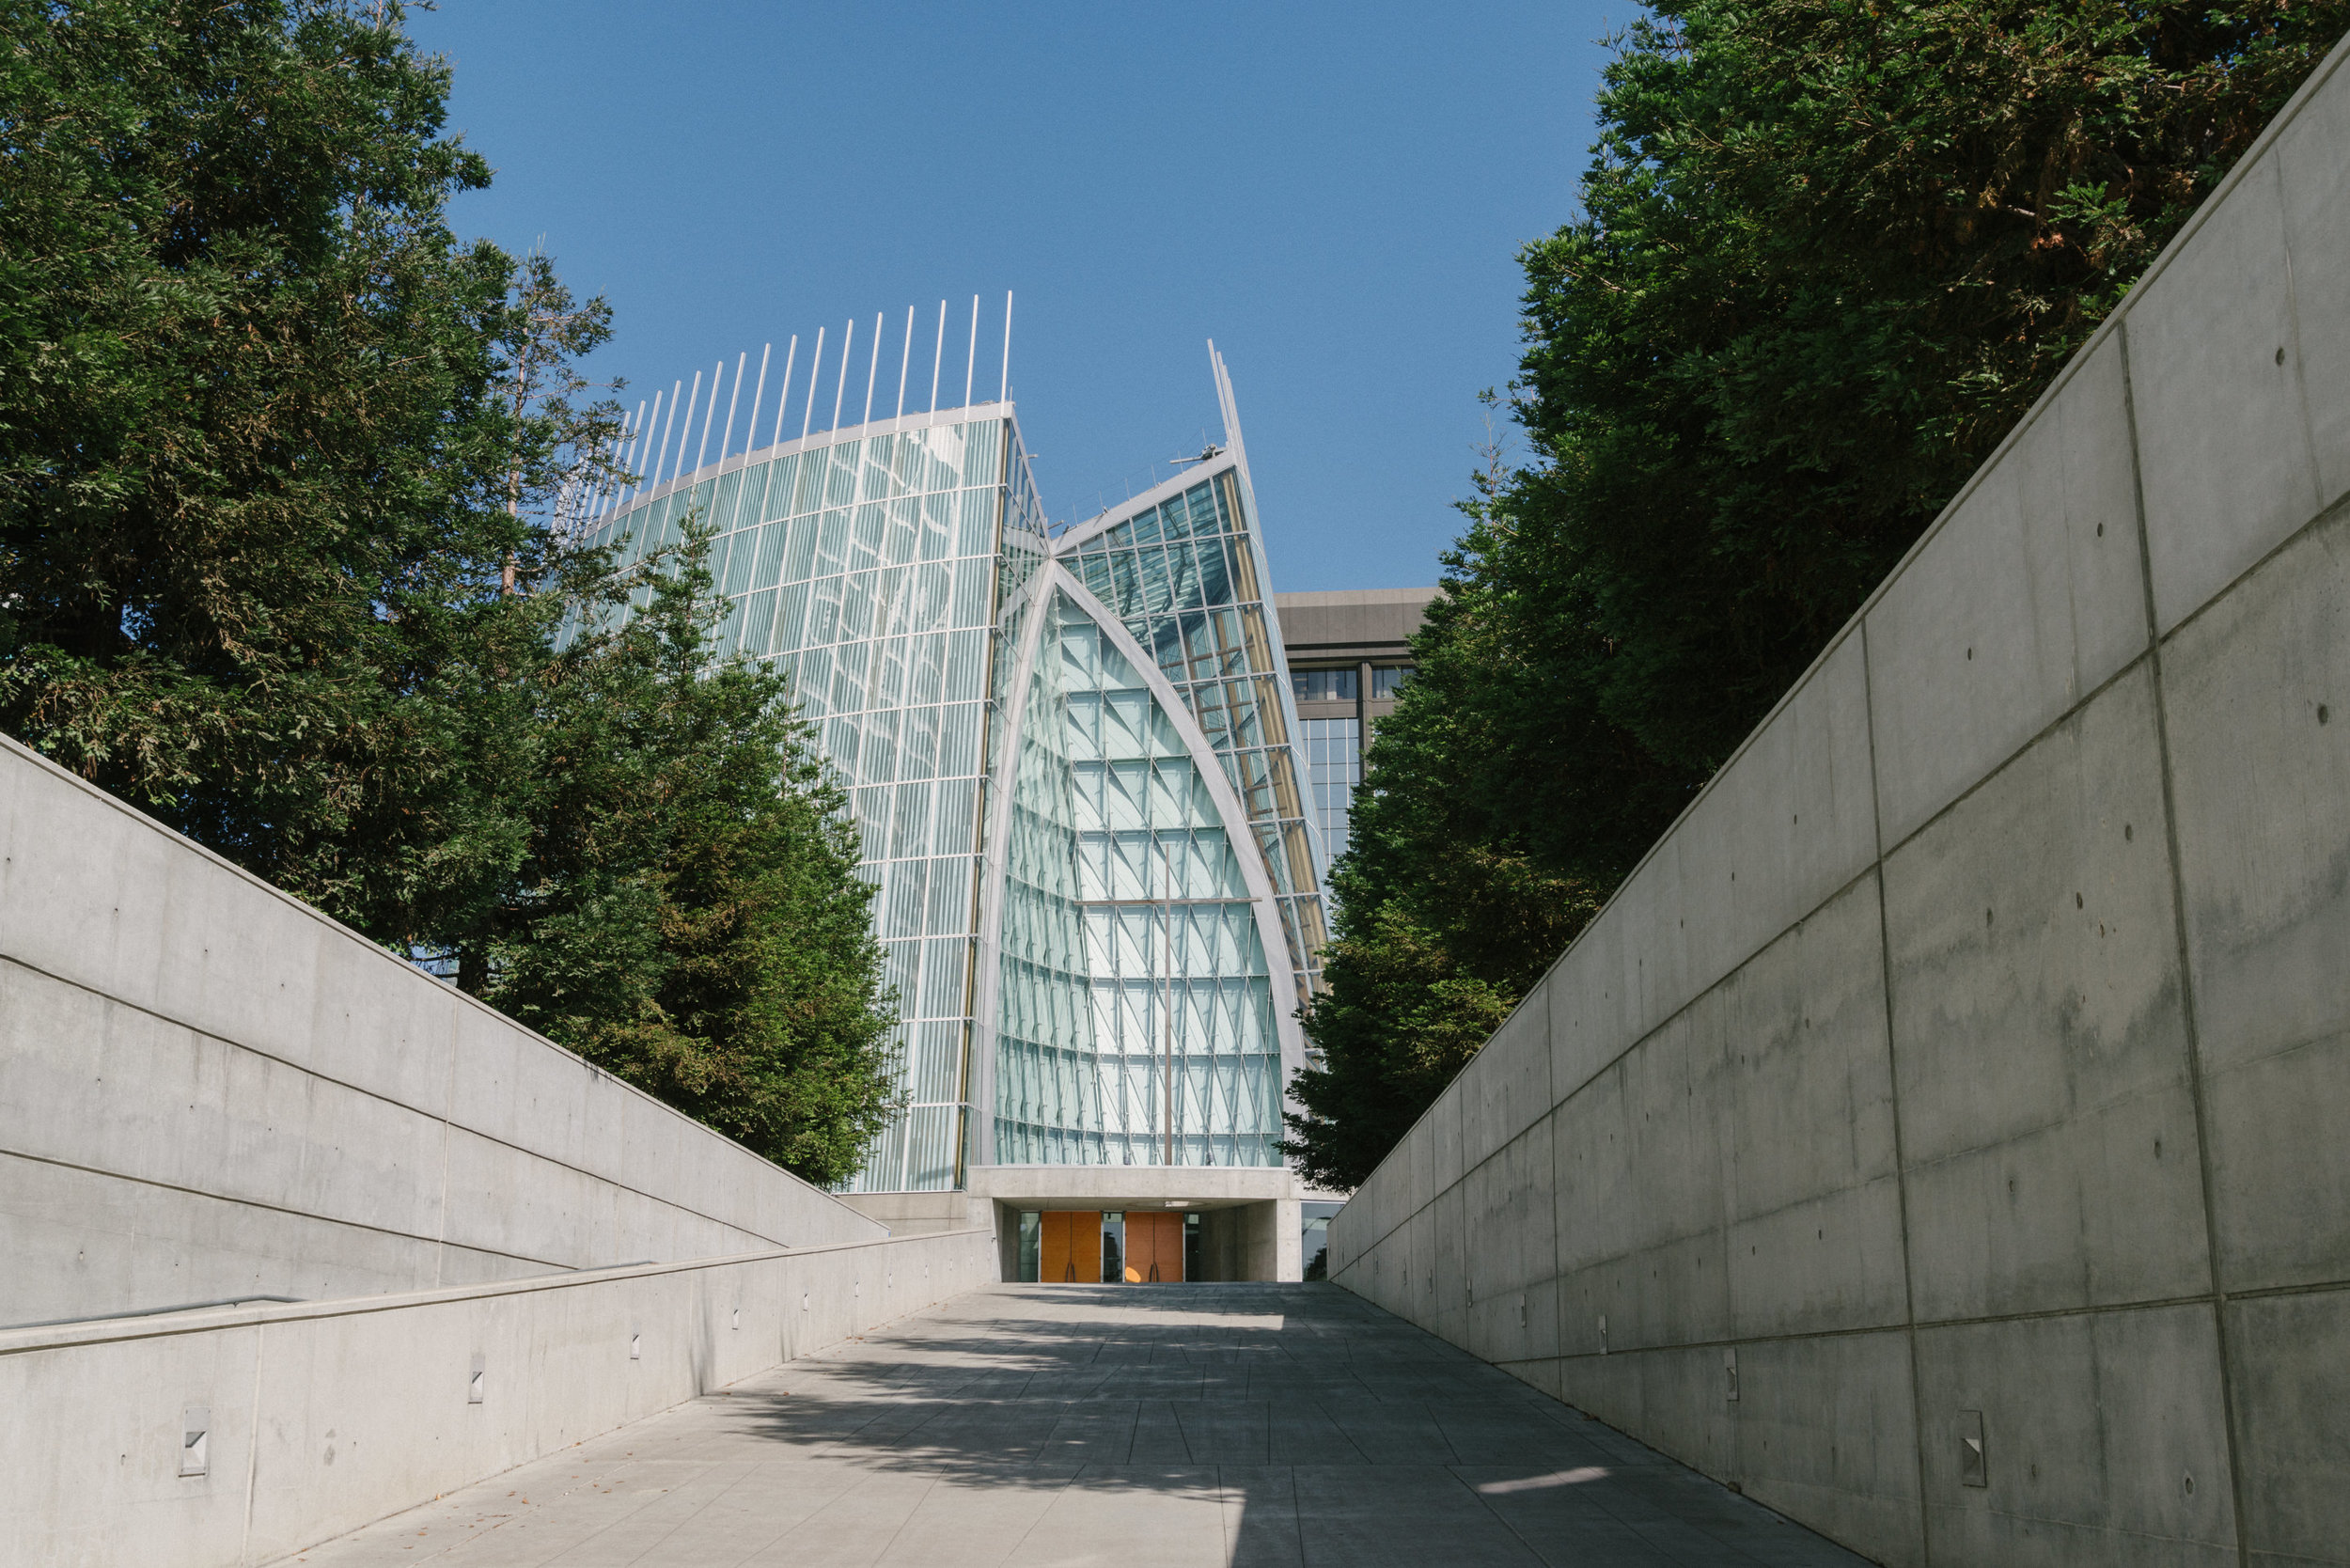 20171003_Cathedral of Christ the Light_DTKM_5064.jpg